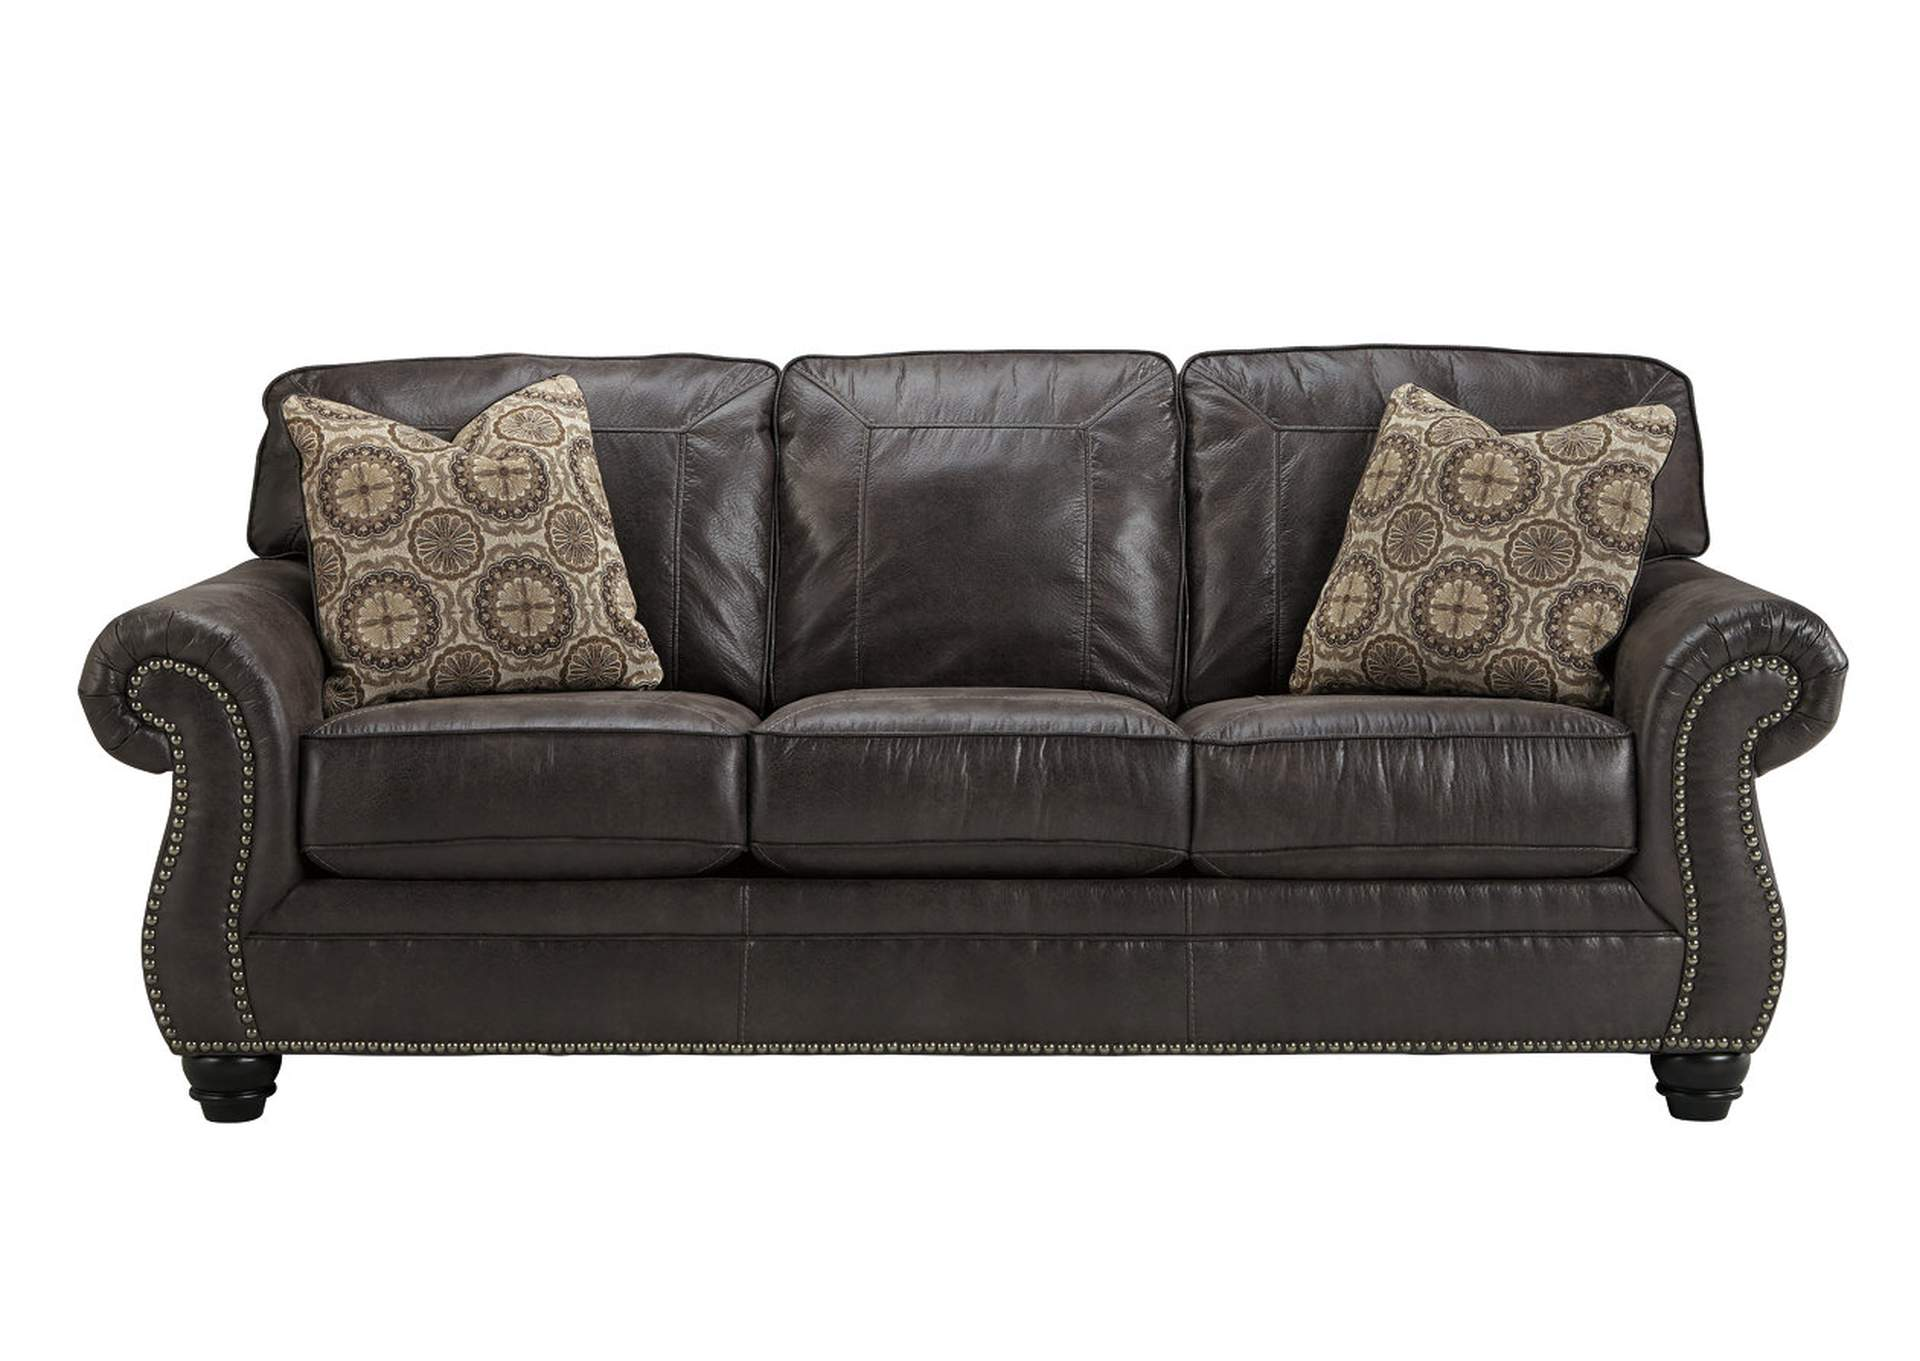 Leather Sofa Sleeper Ashley Furniture Price